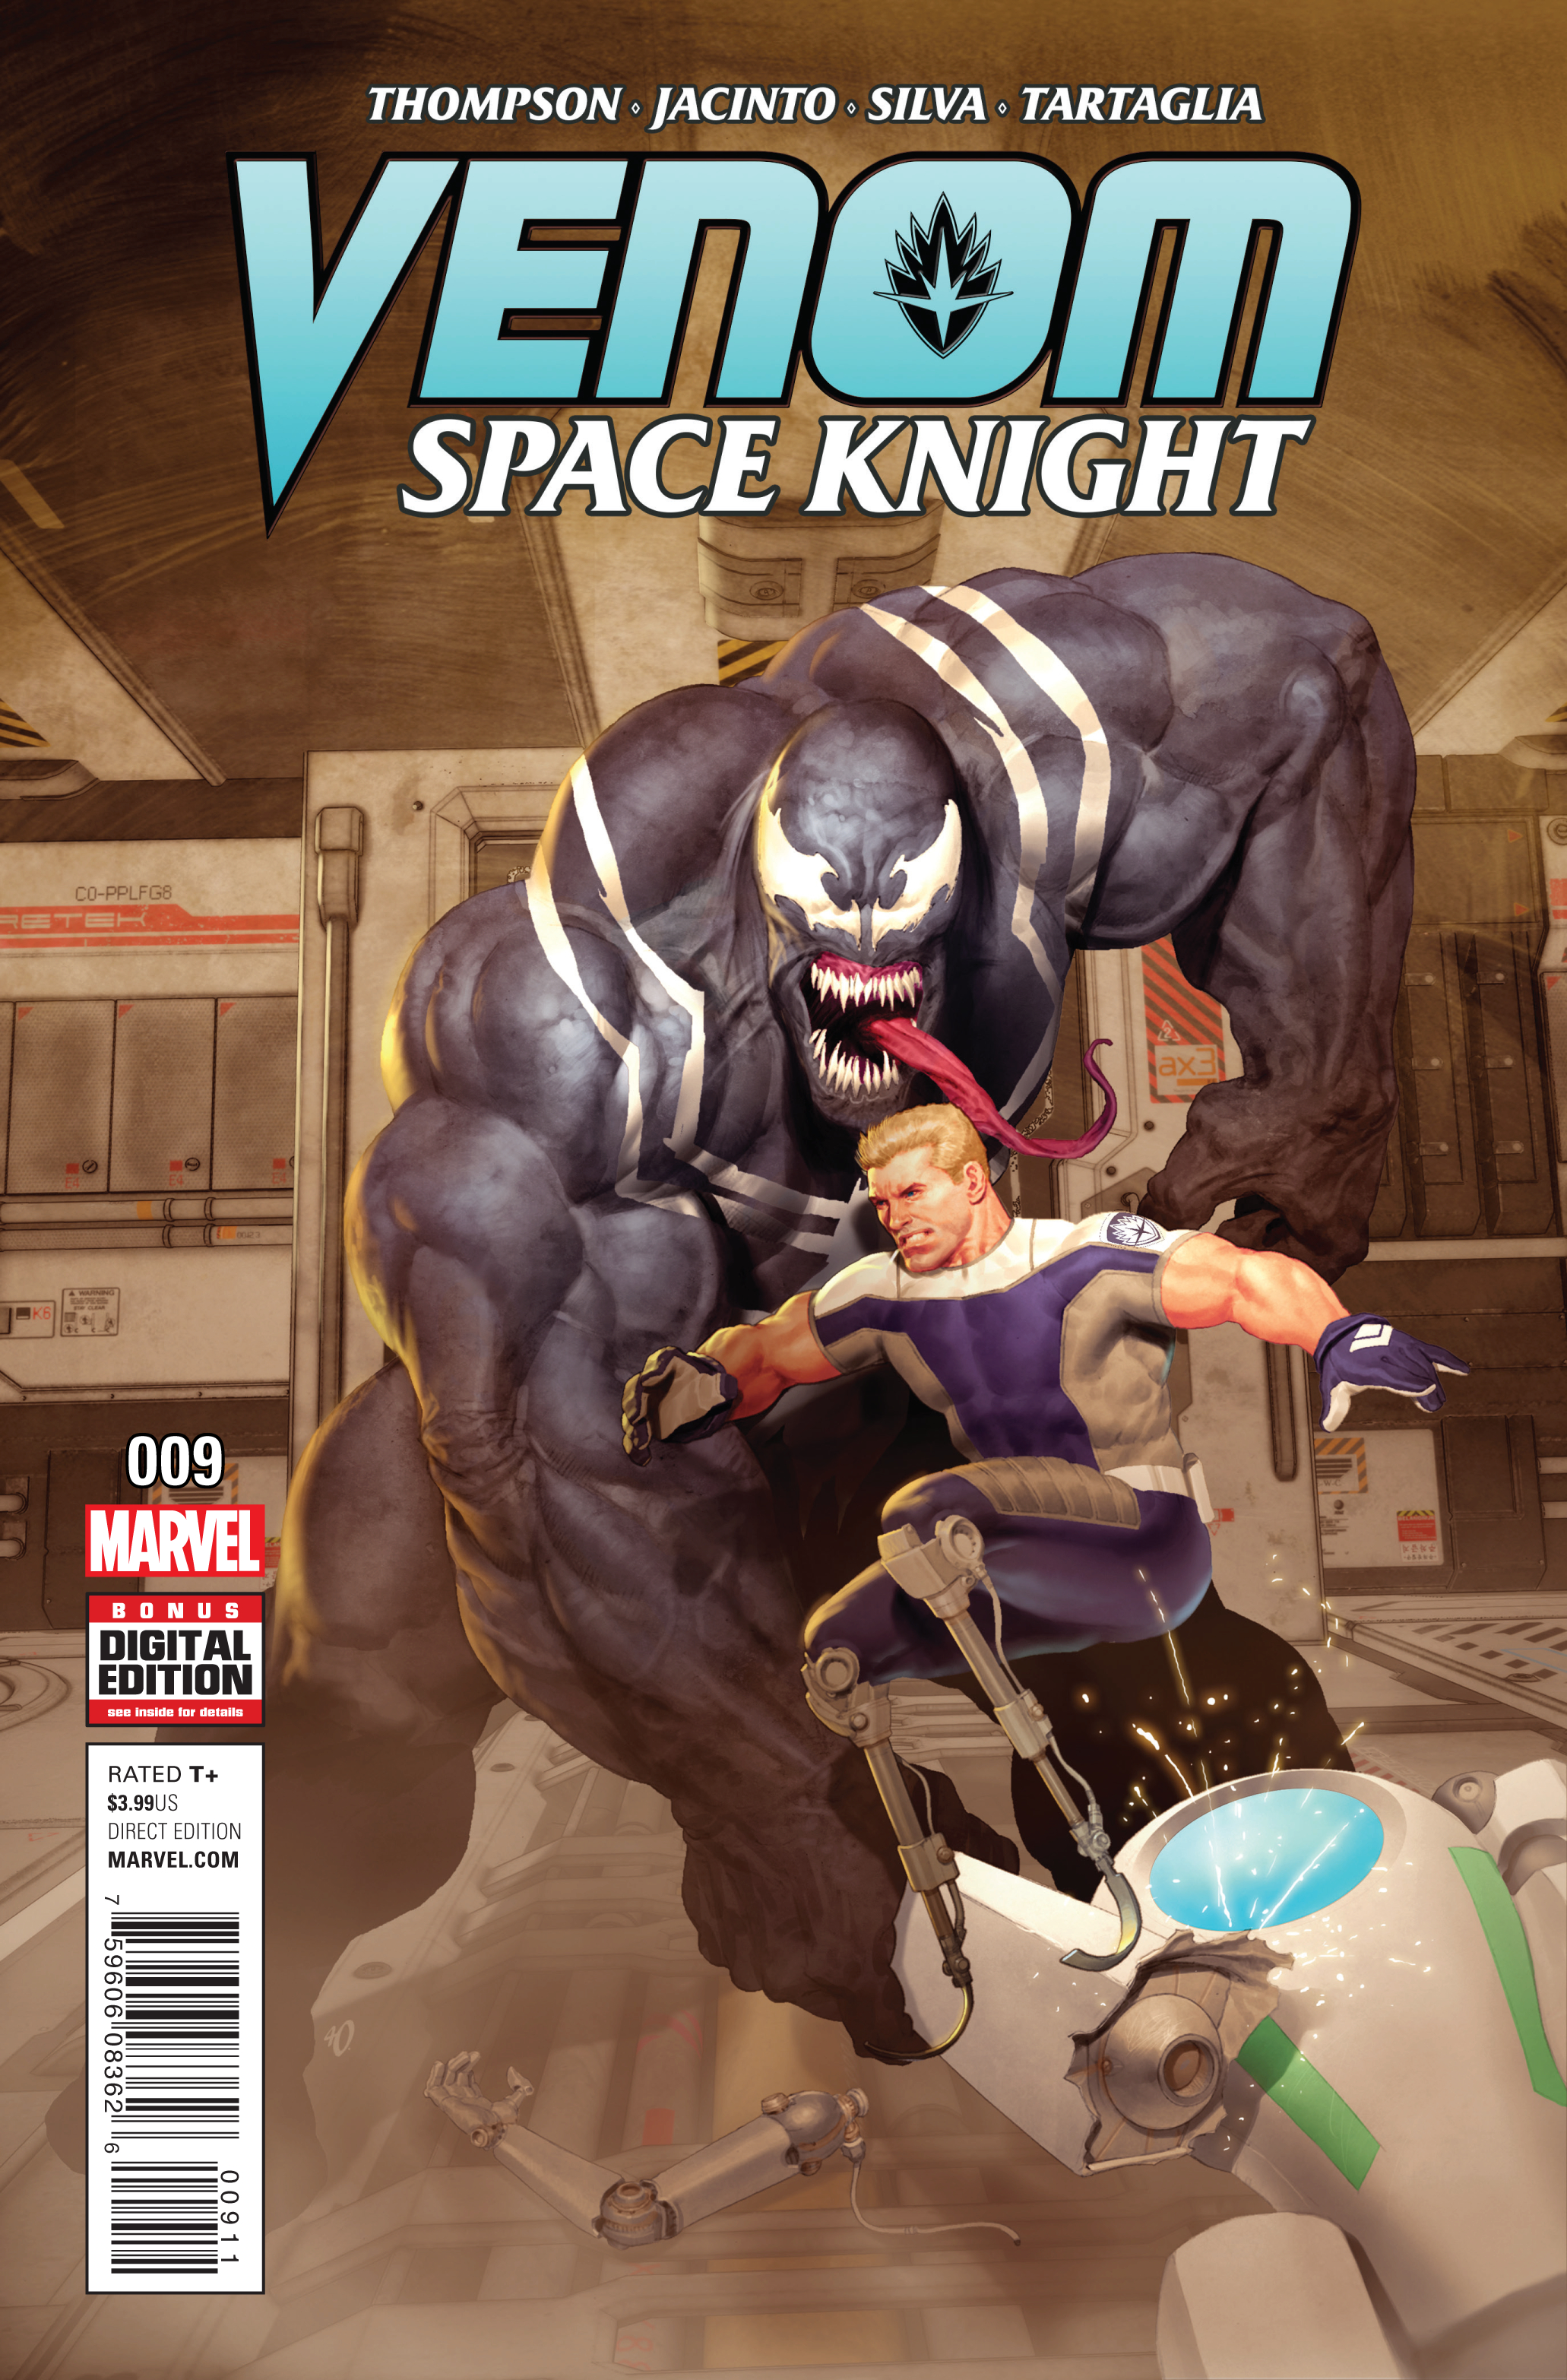 VENOM SPACE KNIGHT #9